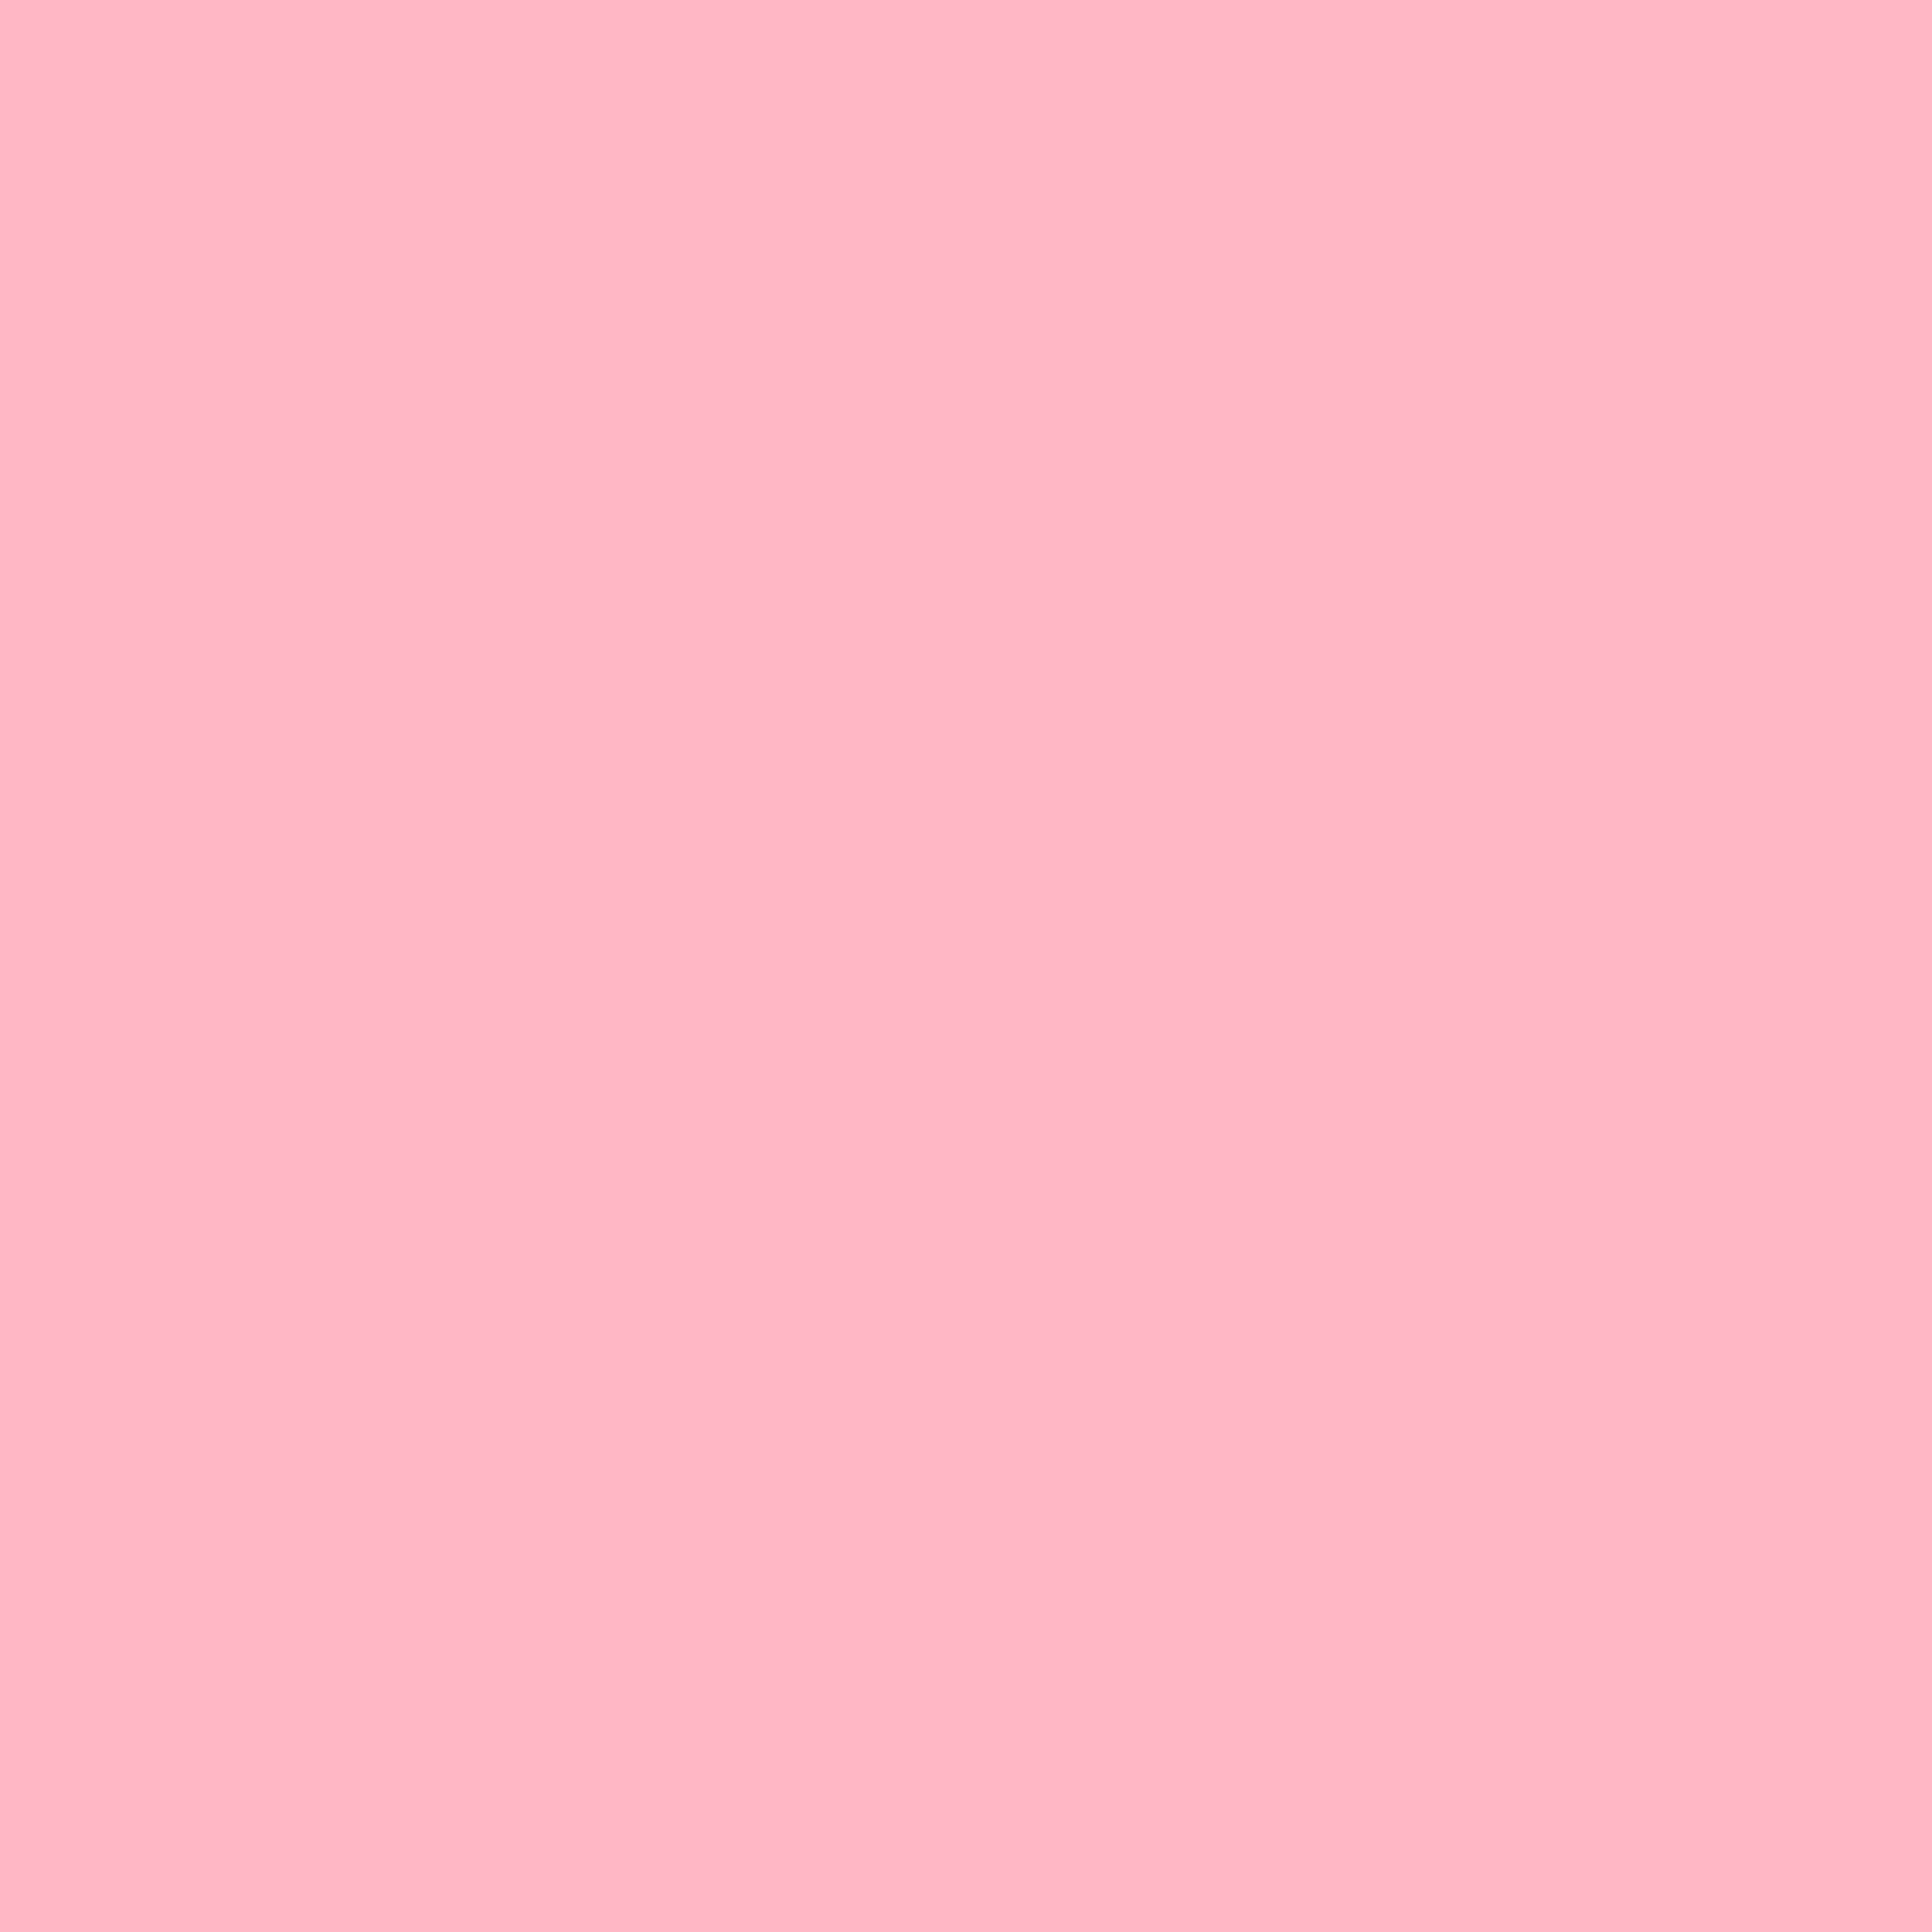 3600x3600 Cherry Blossom Pink Solid Color Background